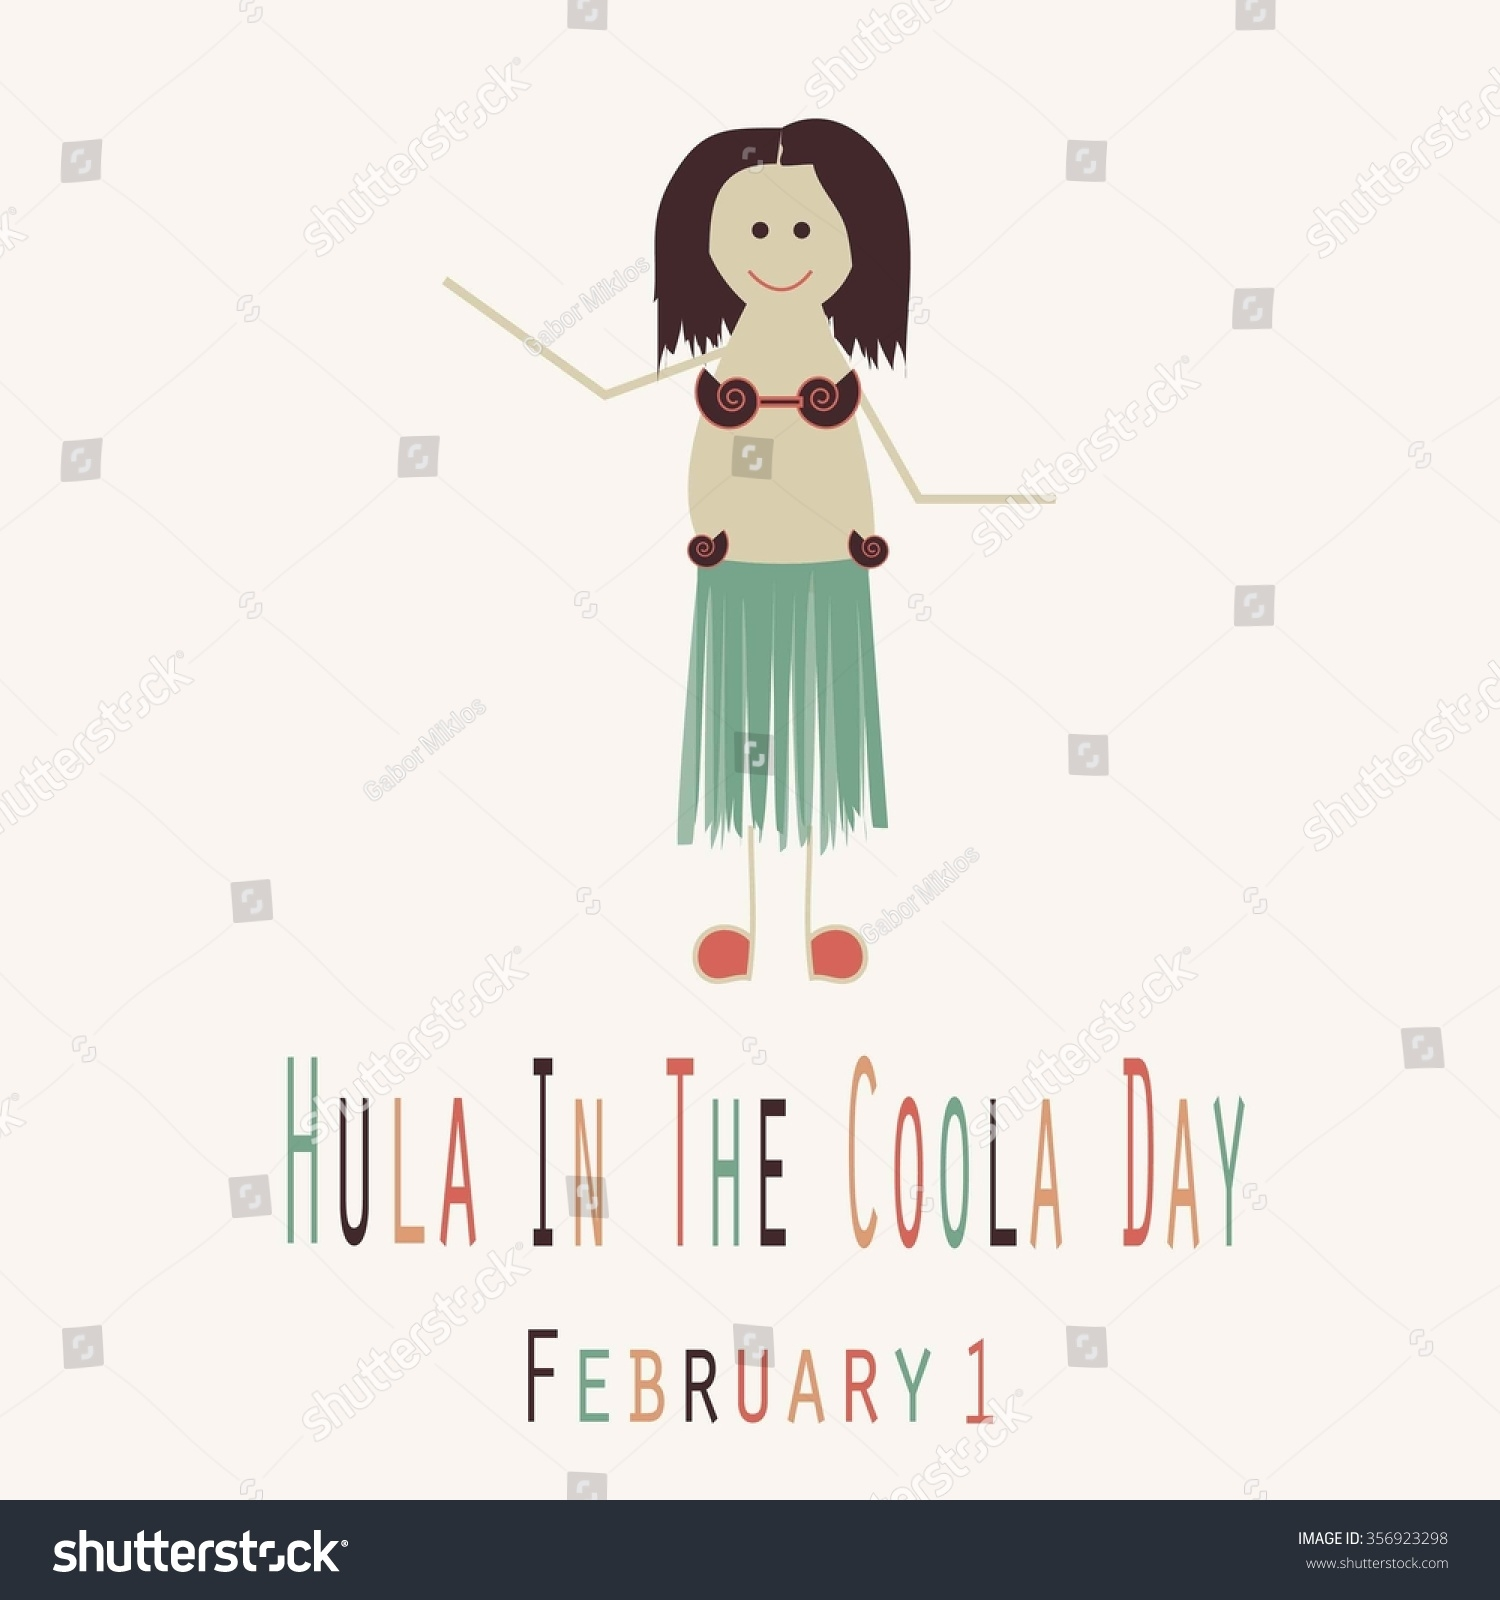 Hula Coola Day Funny Unofficial Holiday Stock Vector Royalty Free